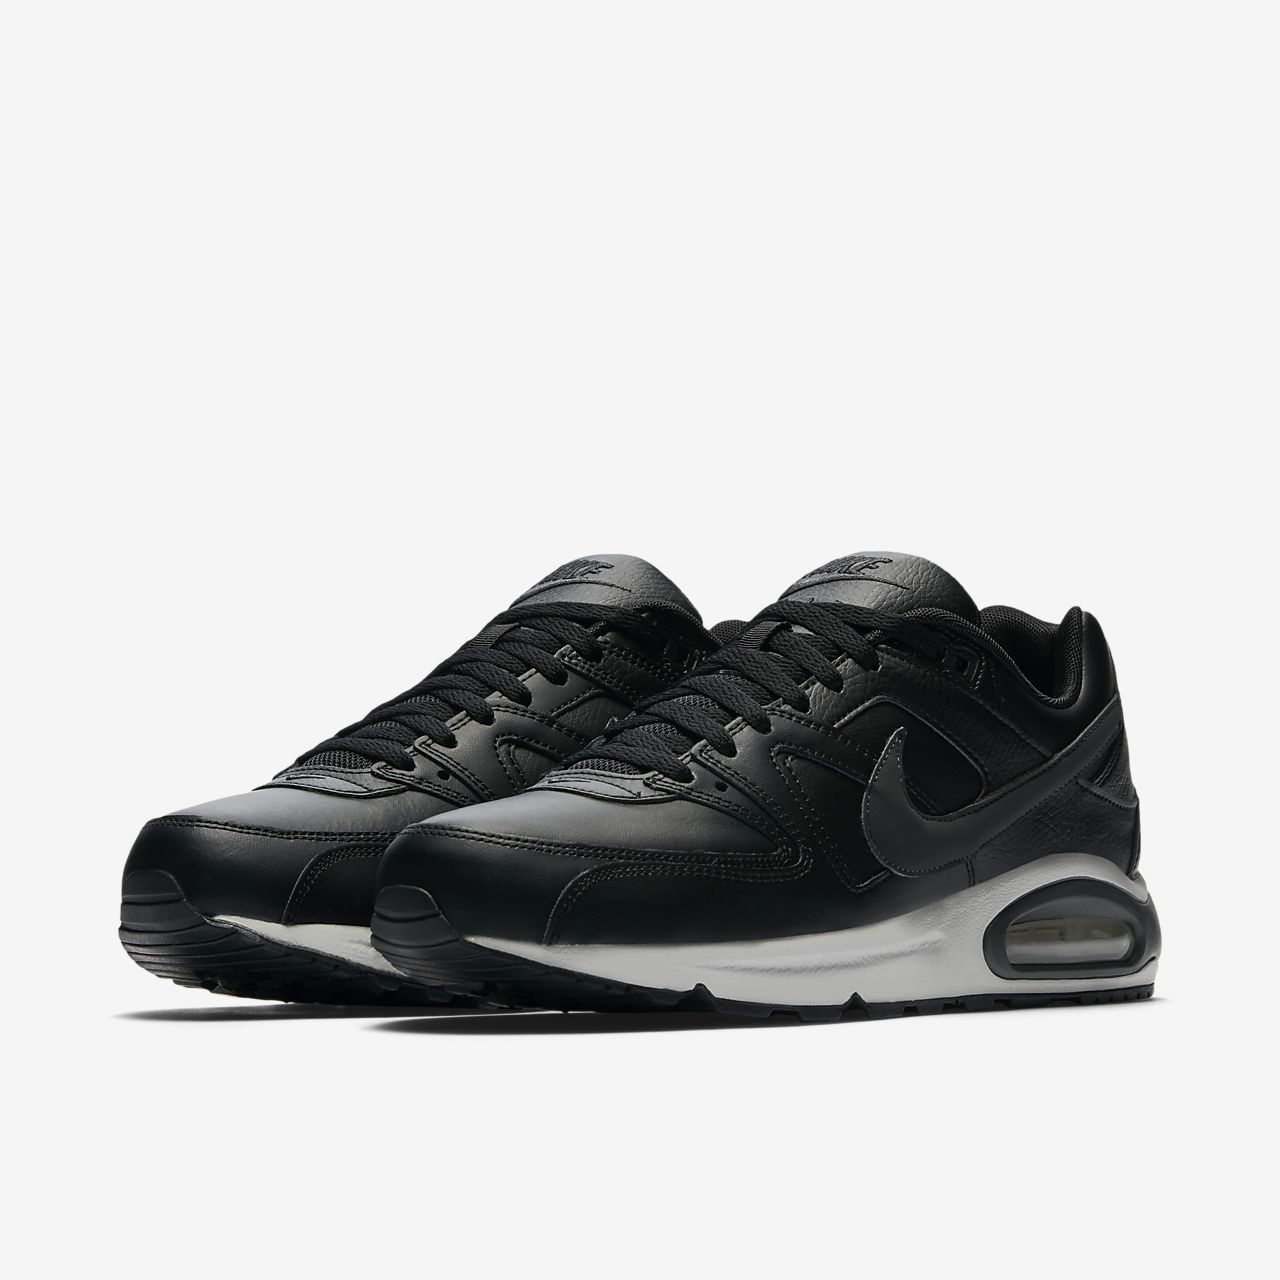 separation shoes fe492 d3832 ... Nike Air Max Command Herrenschuh